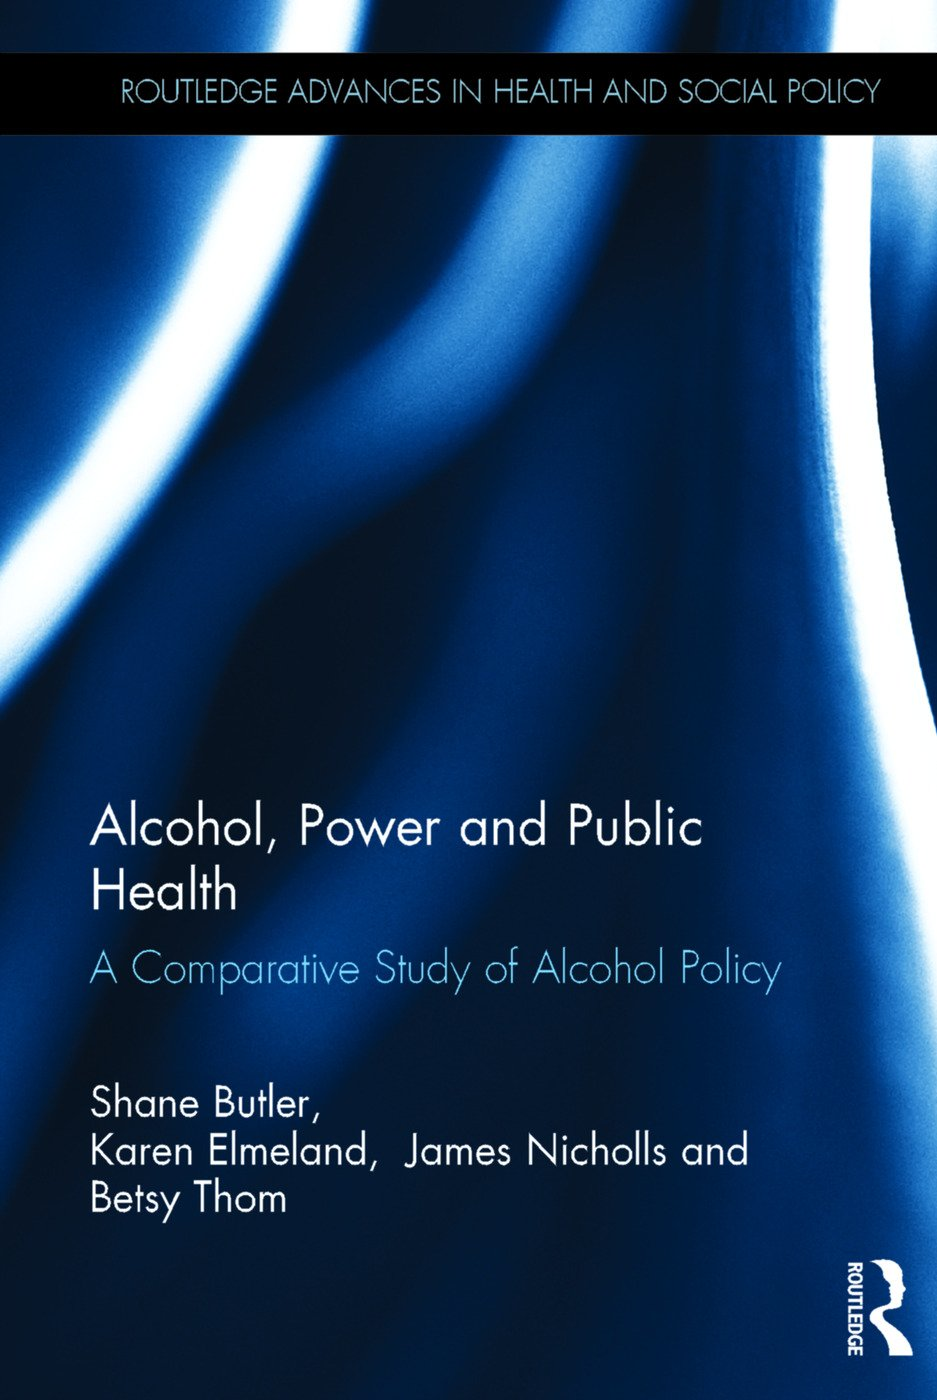 Alcohol, Power and Public Health